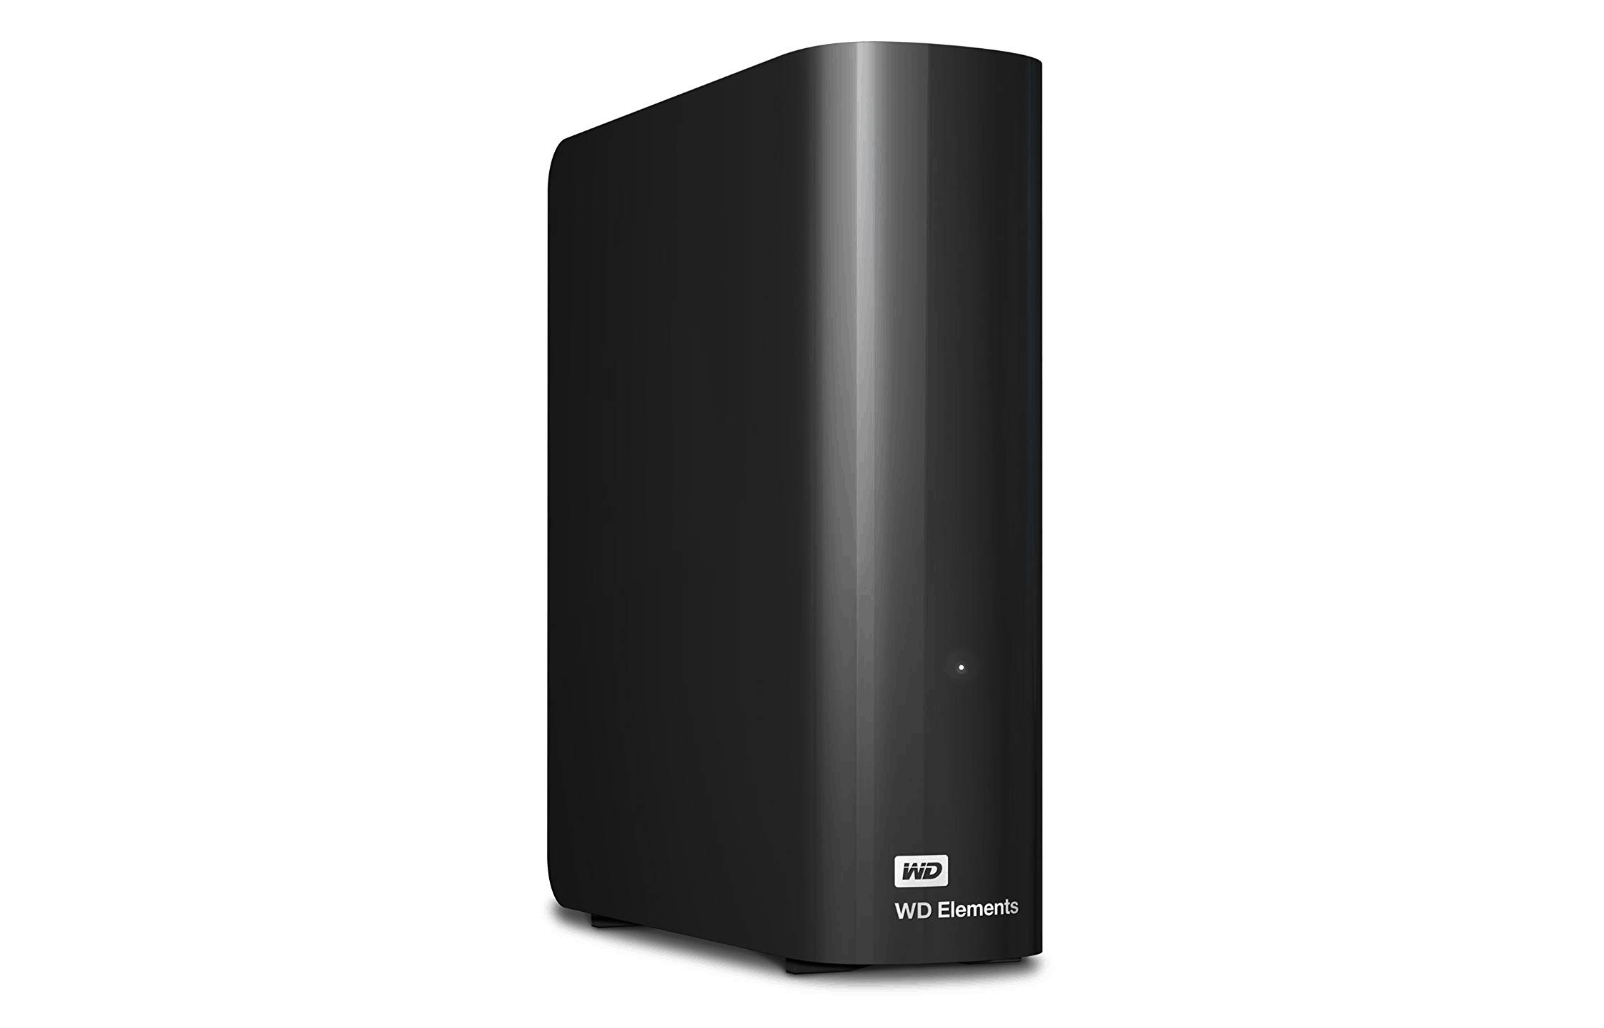 WD 4TB External Hard Drive